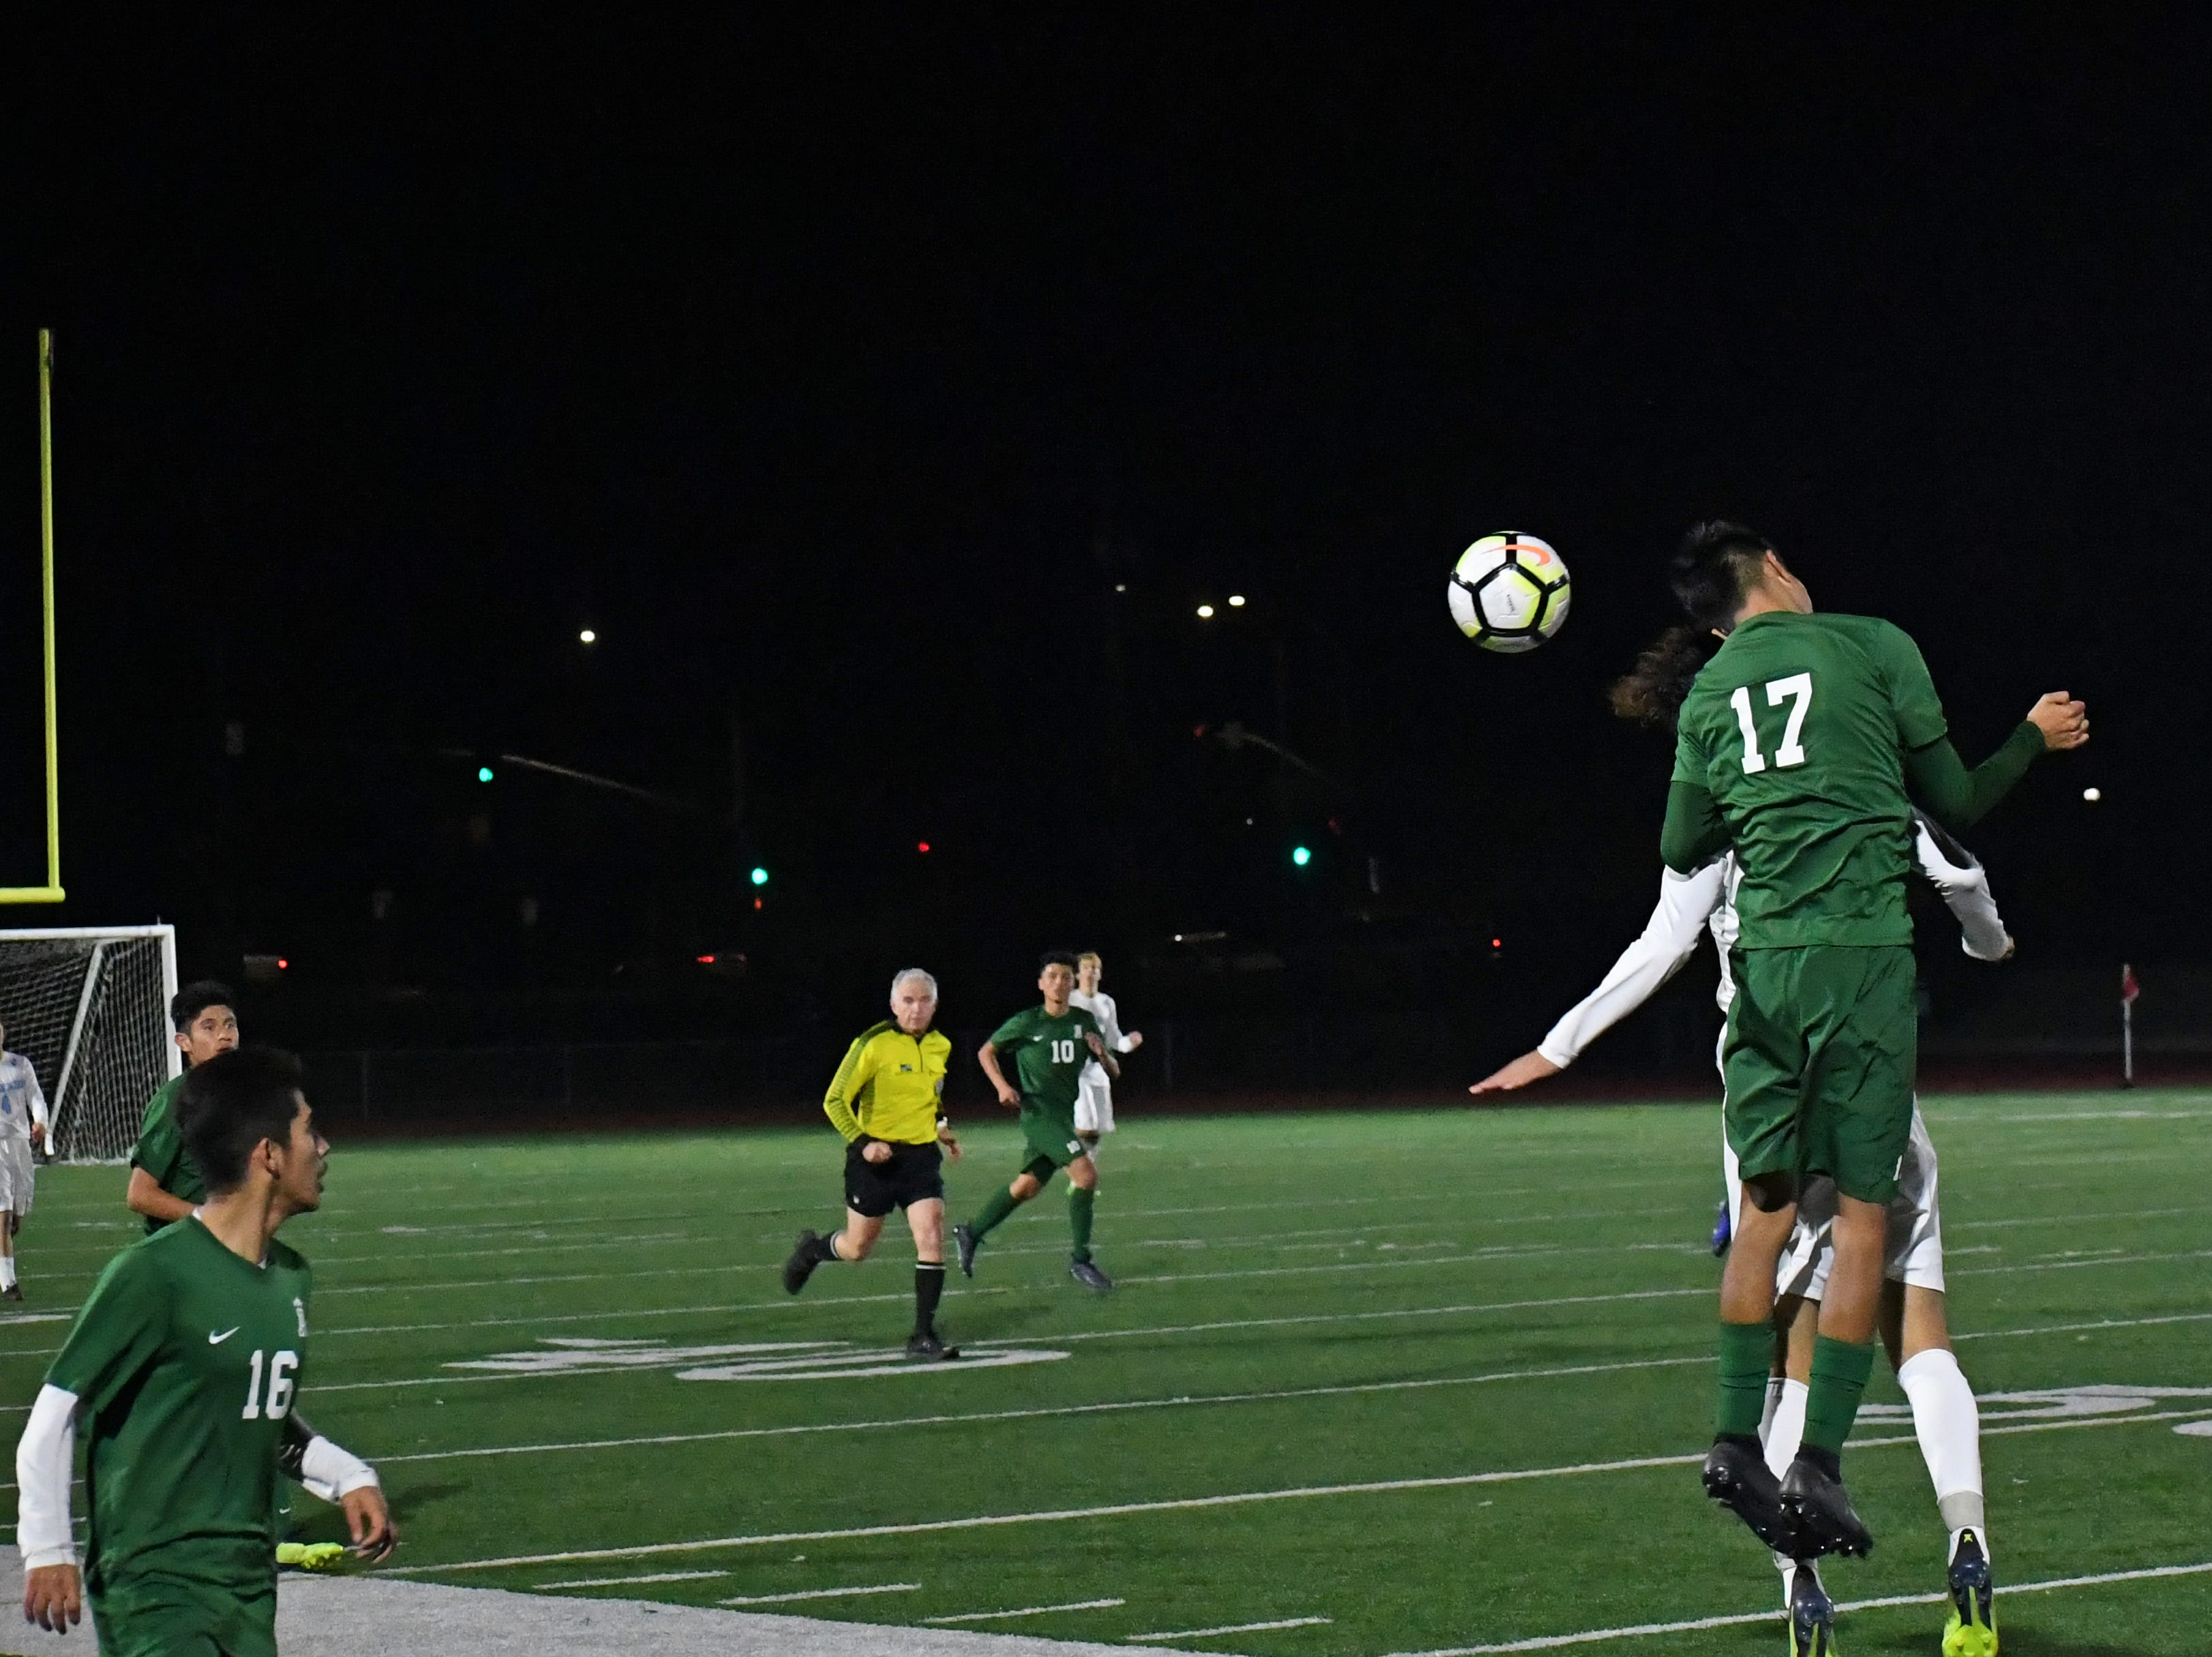 Defender Angel Medrano (17) knocks a header towards the attacking side in the second half.